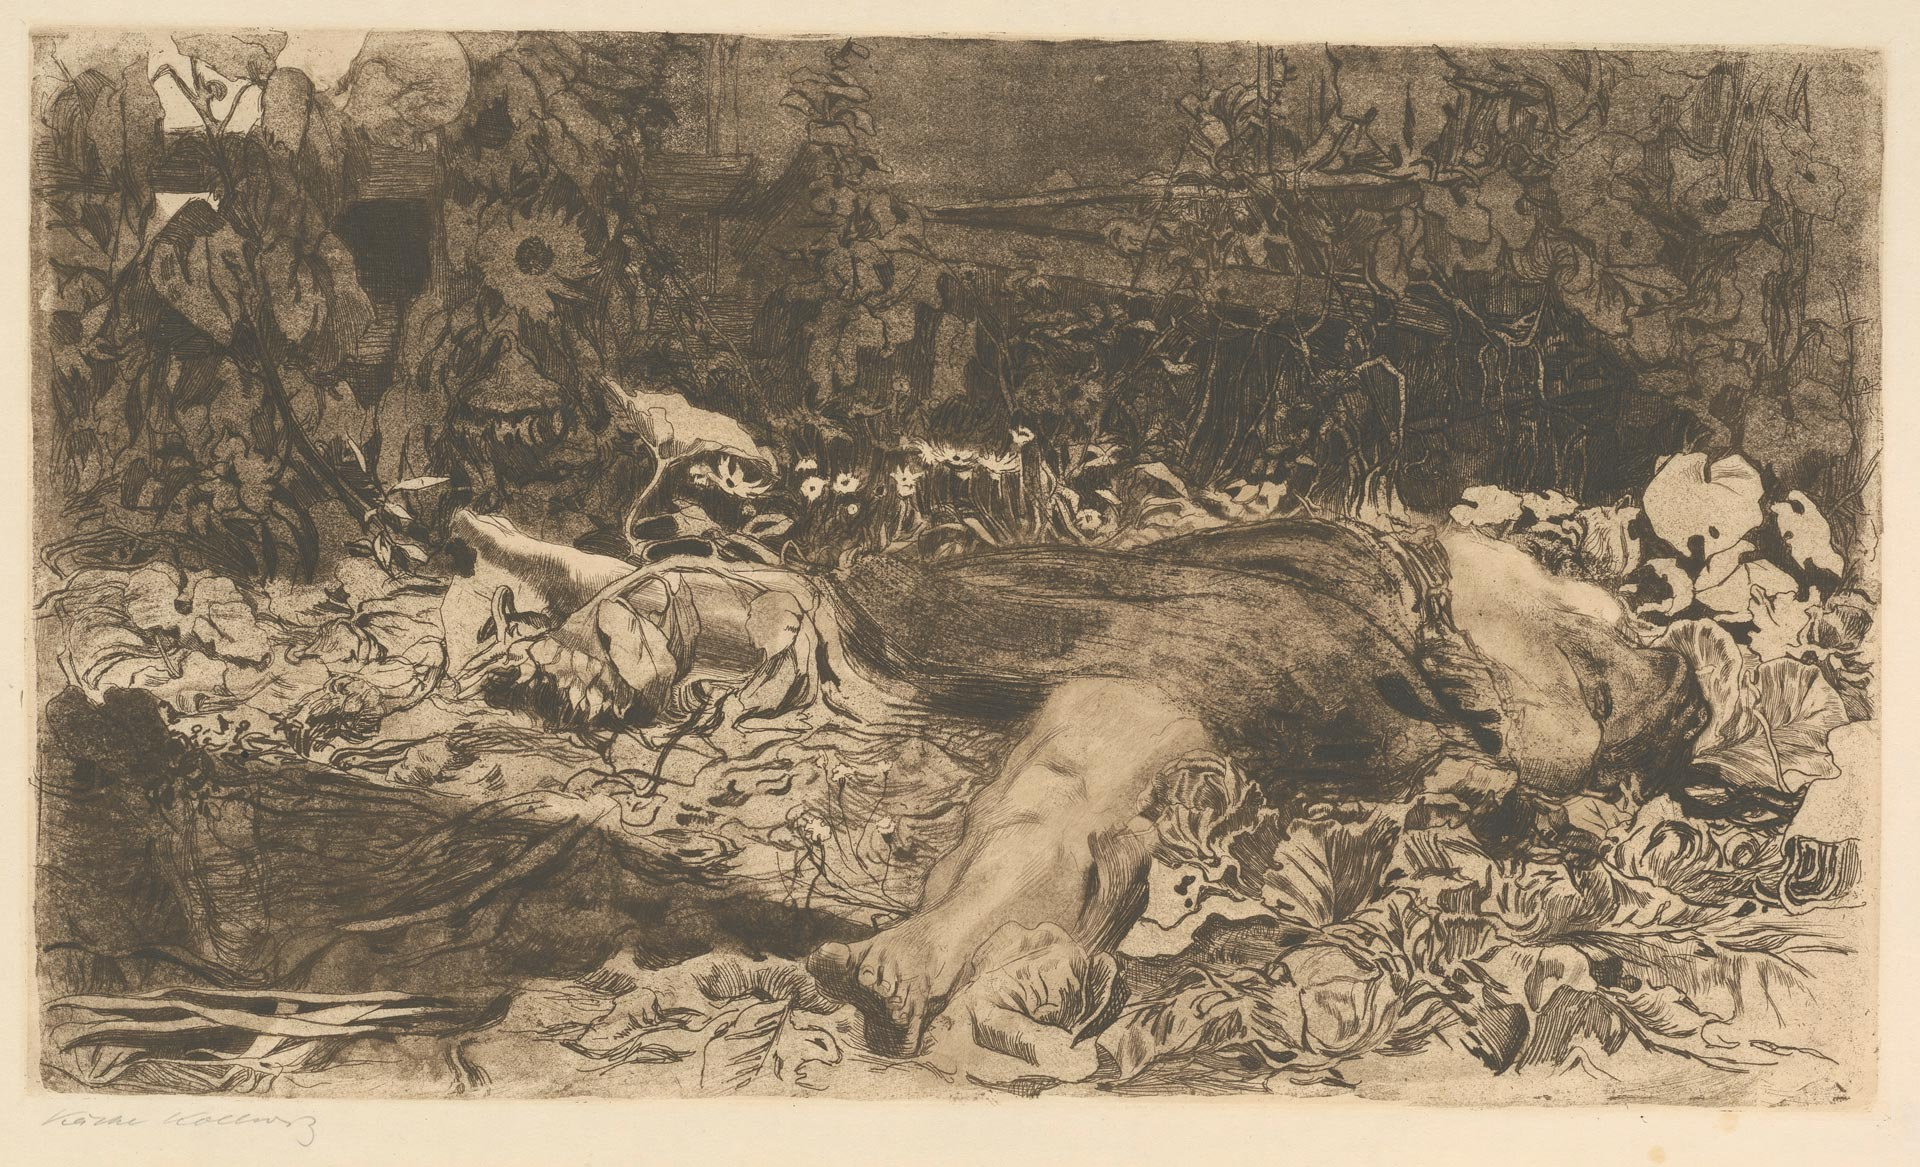 Käthe Kollwitz, Raped, sheet 2 of the cycle »Peasants War«, 1907/1908, line etching, drypoint, sandpaper, reservage and soft ground with imprint of fabric and Ziegler's transfer paper, Kn 101 V a, Cologne Kollwitz Collection © Käthe Kollwitz Museum Köln